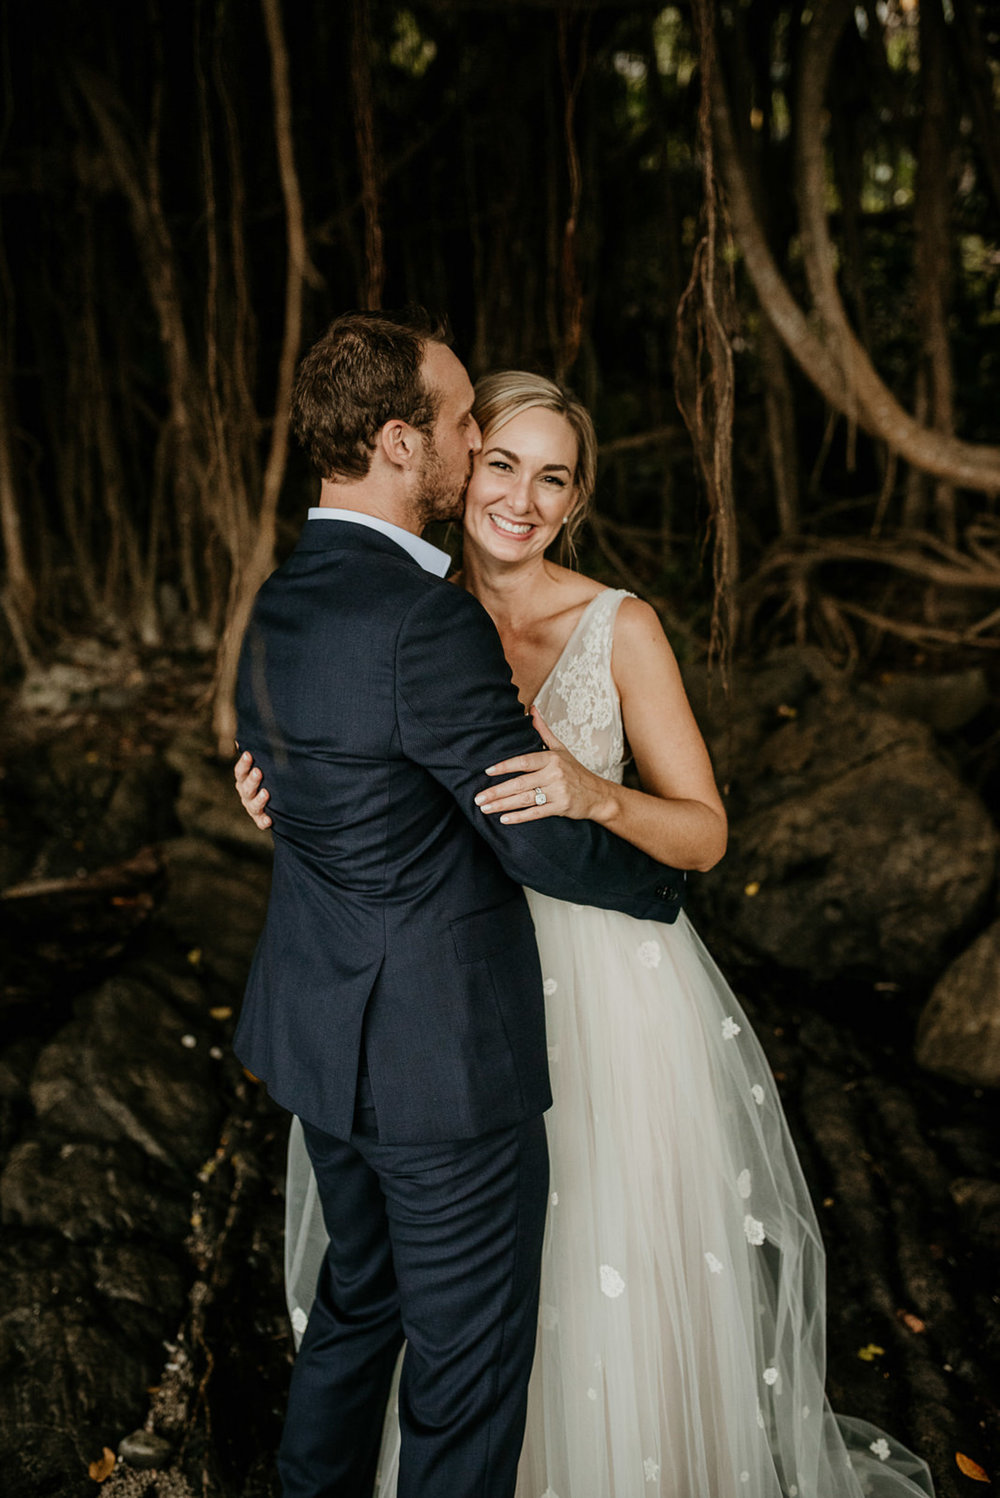 The Raw Photographer - Cairns Wedding Photographer - Port Douglas Little Cove Ceremony- Beach Wedding Photography - Bride Wedding Dress - Sugar Wharf Venue Reception-24.jpg